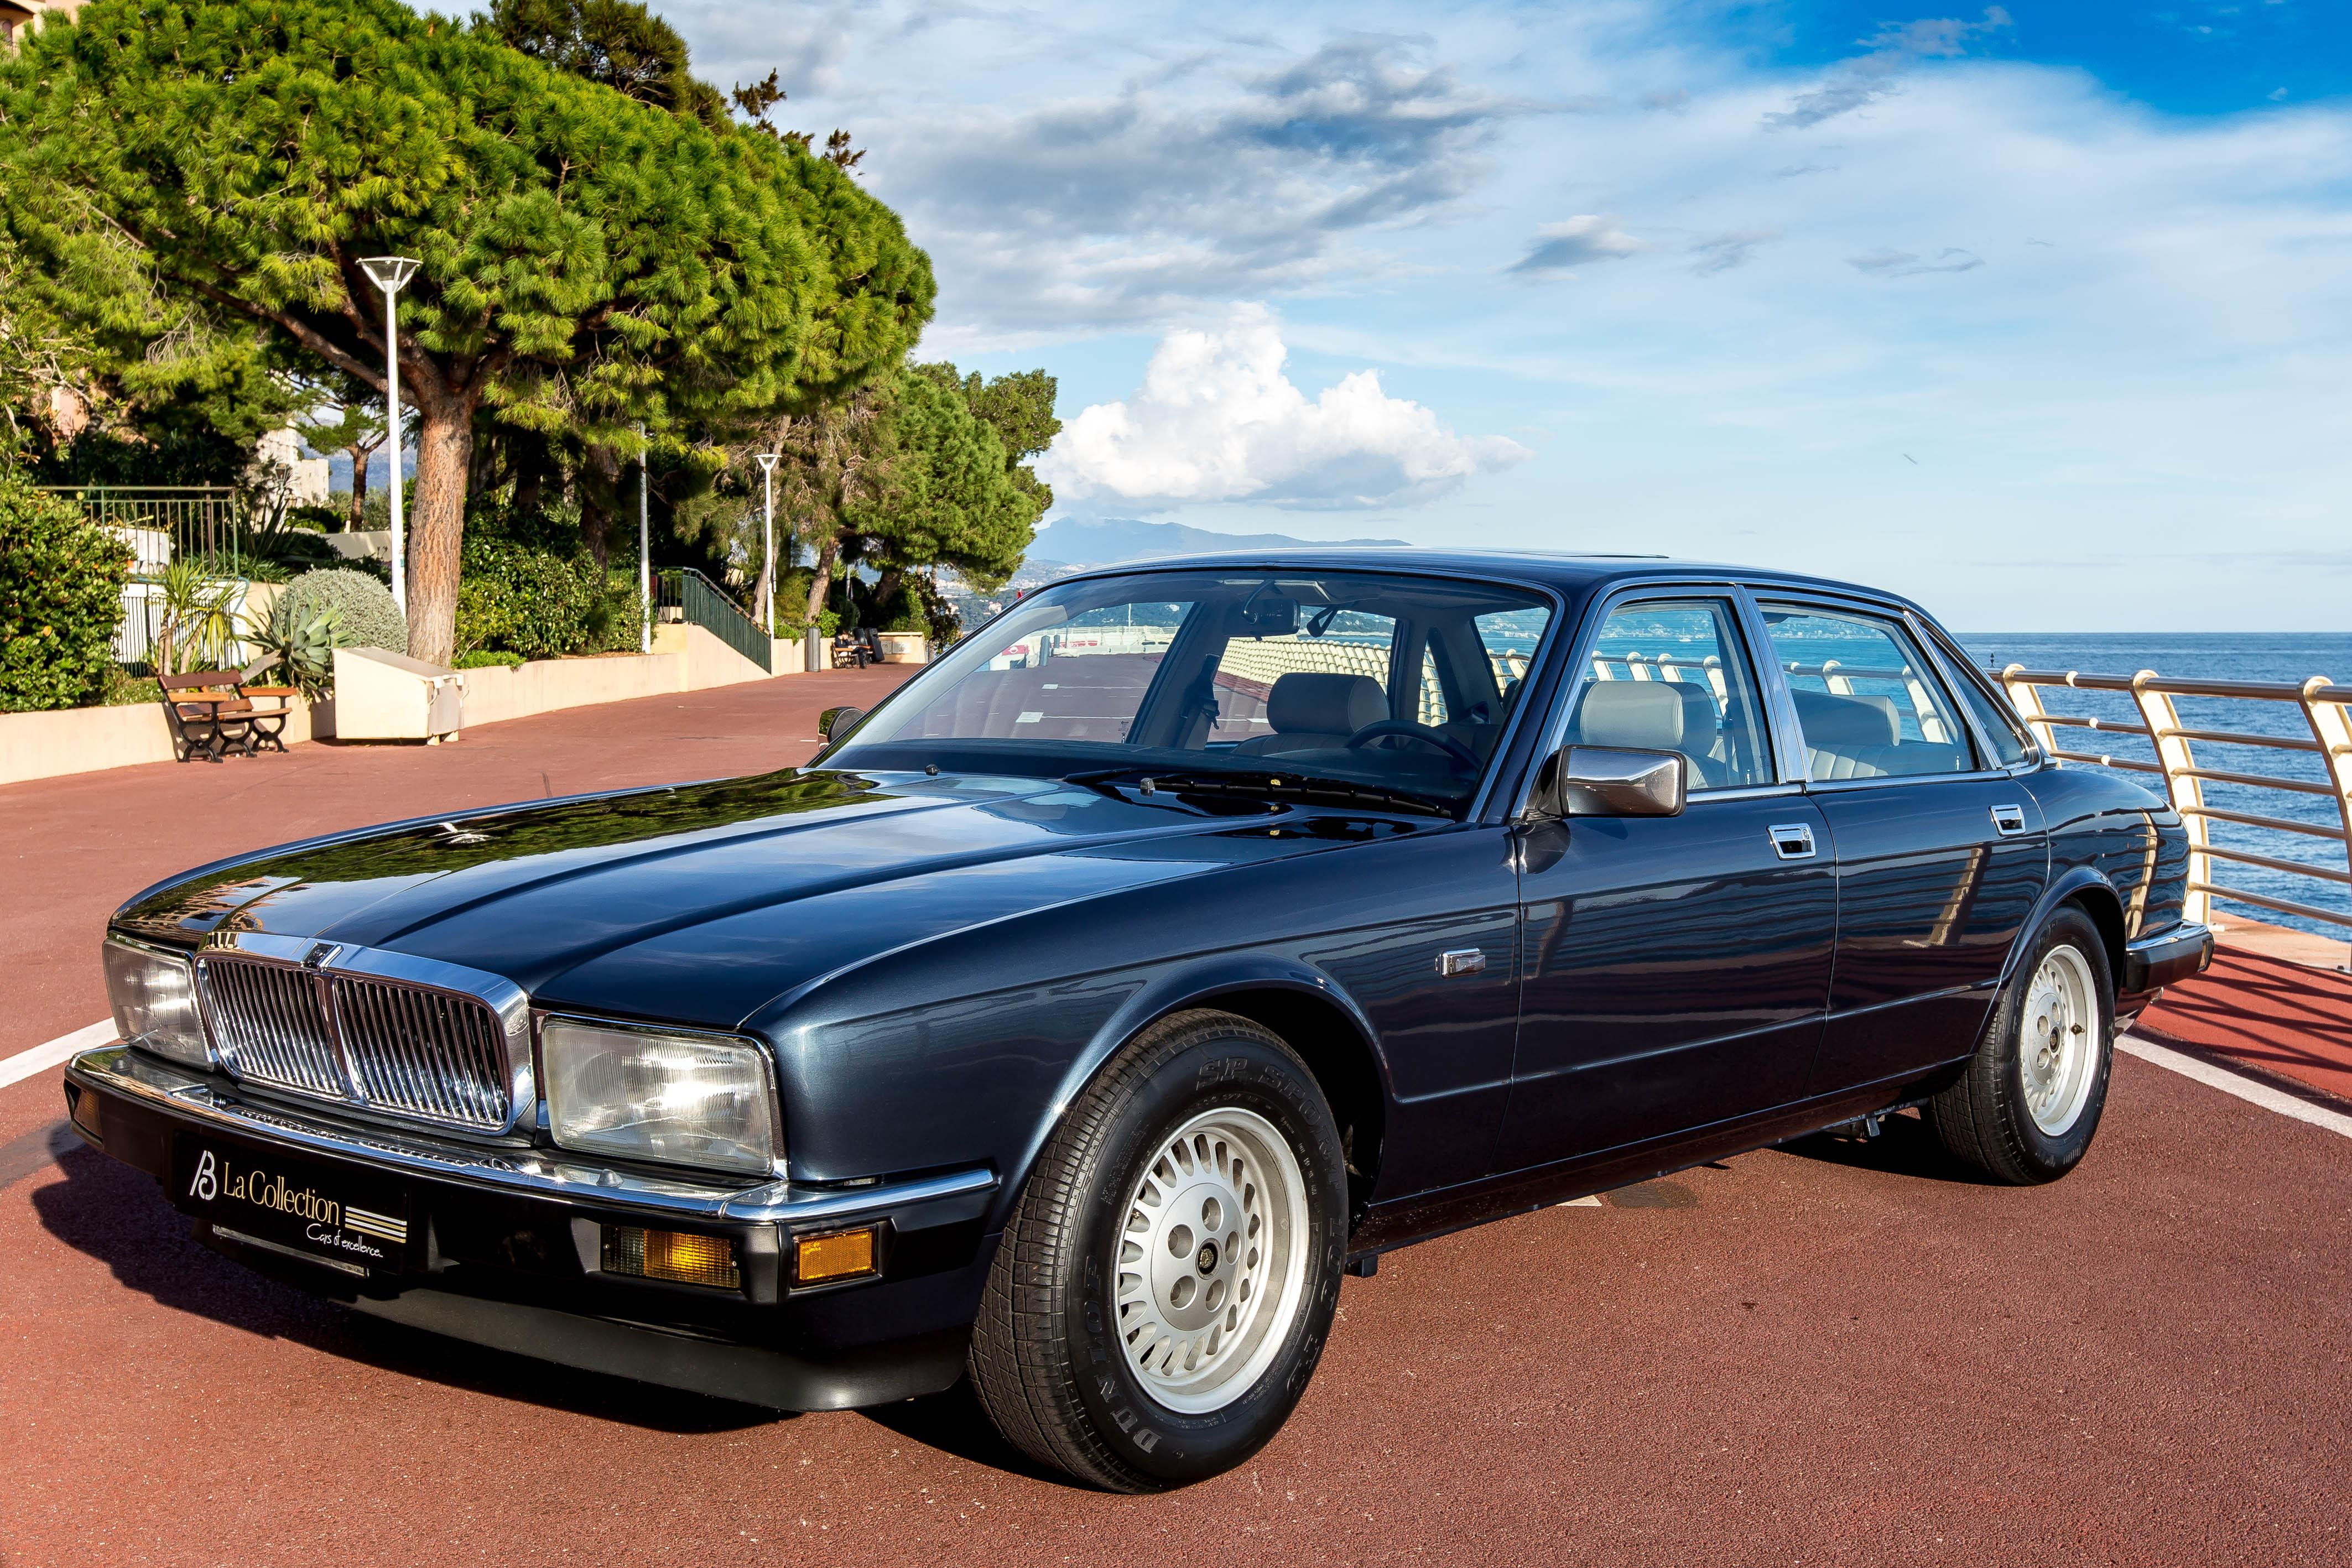 JAGUAR SOVERING 4.2 1988